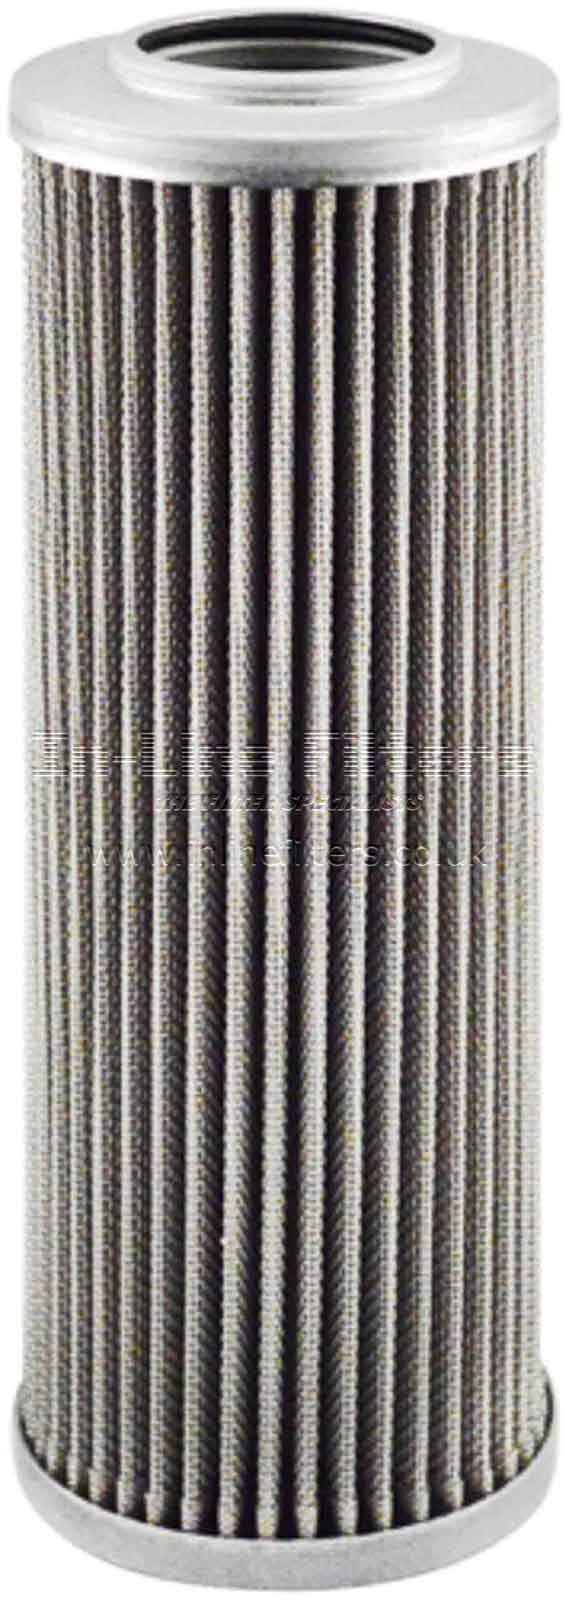 FBW-PT23025 FILTER-Hydraulic(Brand Specific-Baldwin PT23025) - Click Image to Close